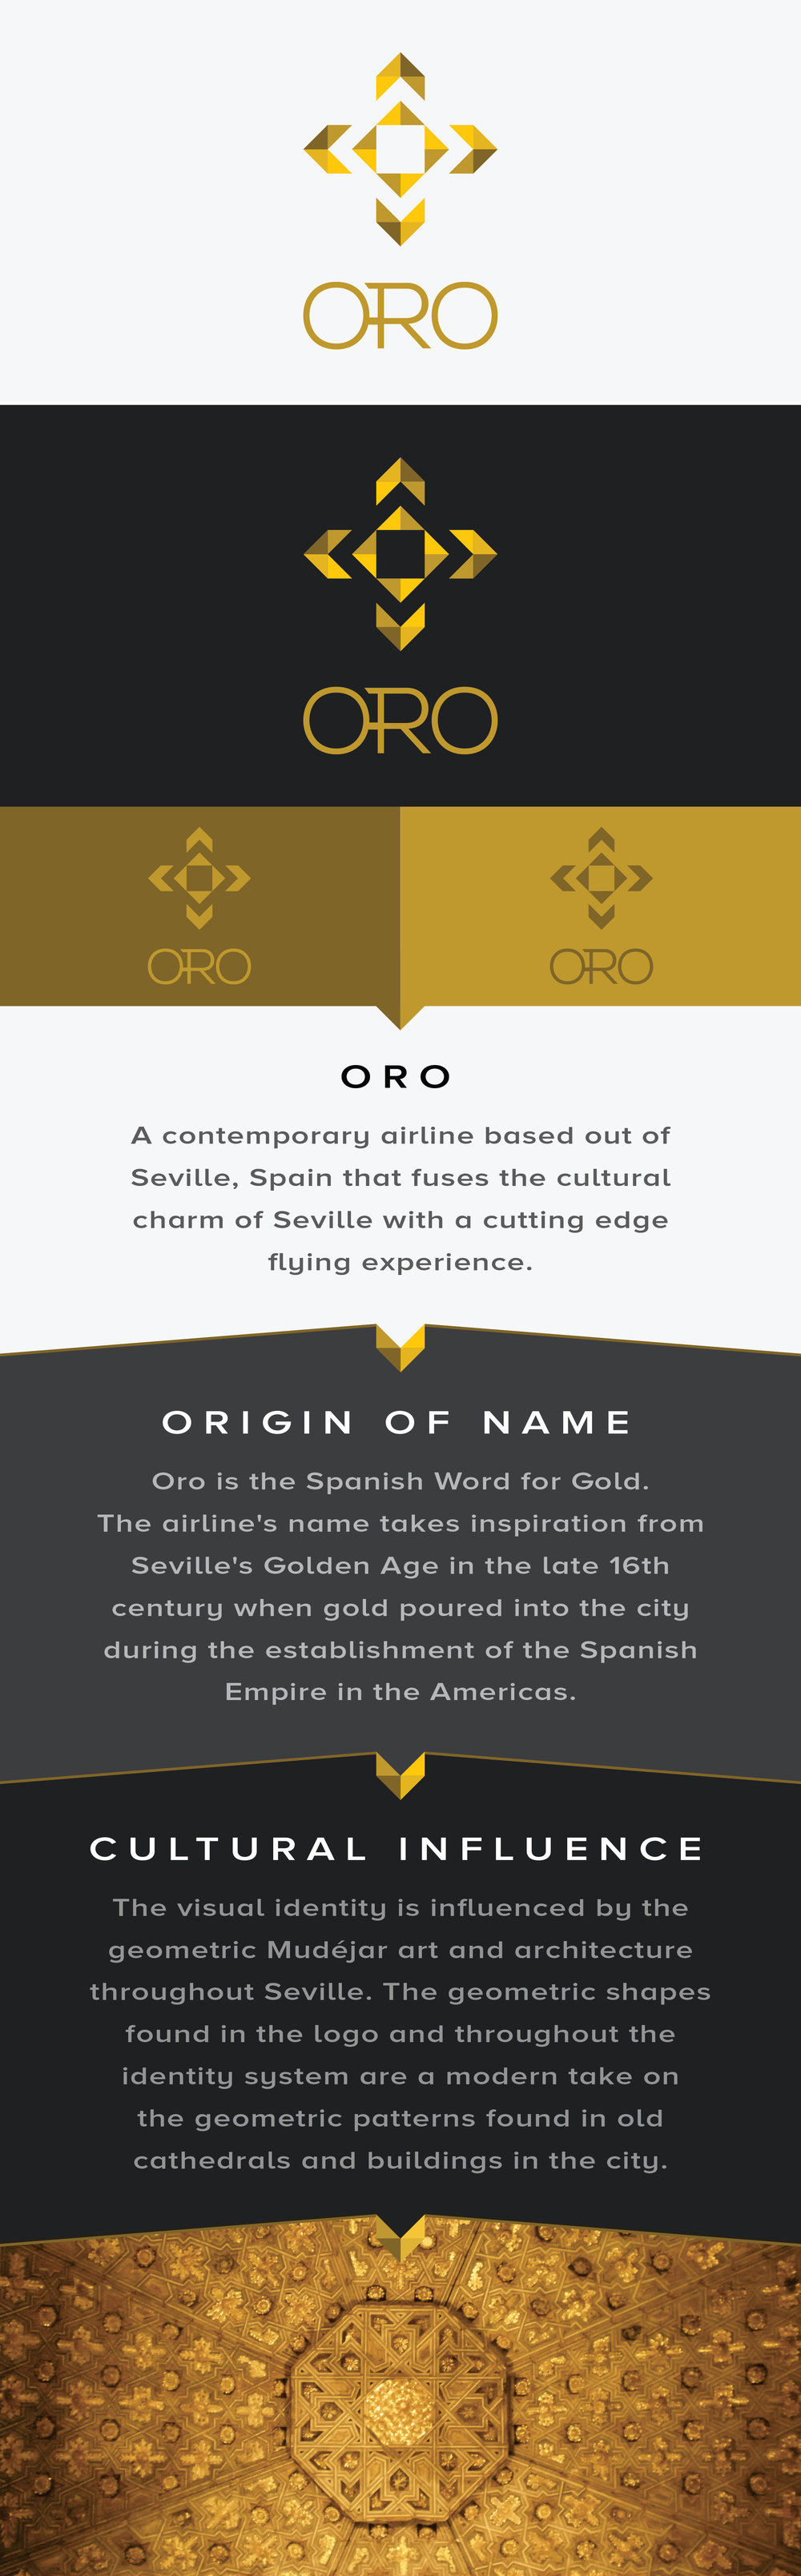 ORO updated_concept visuals2-12.jpg